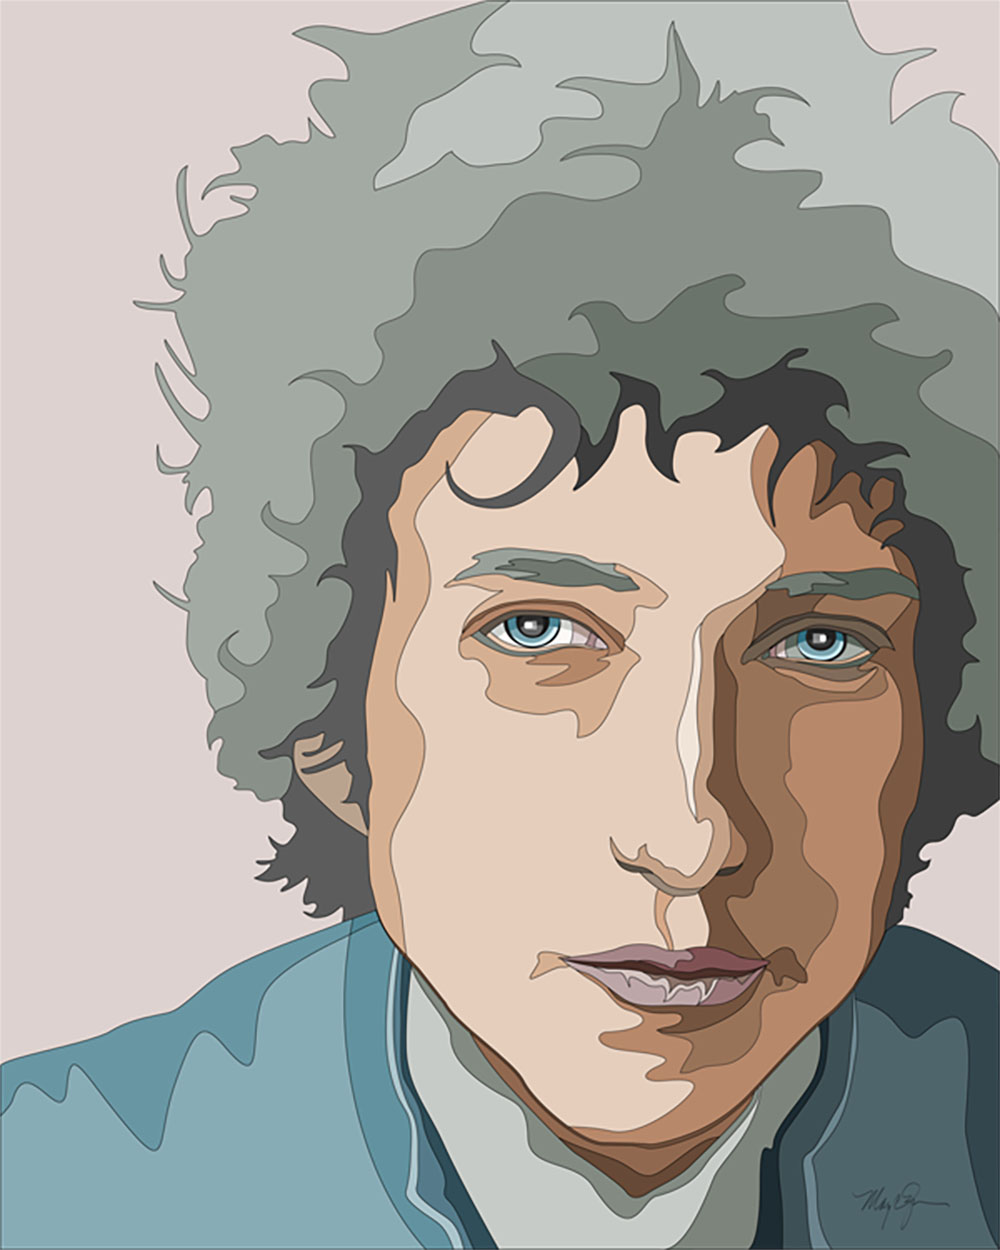 Bob Dylan illustration by Mary Zins